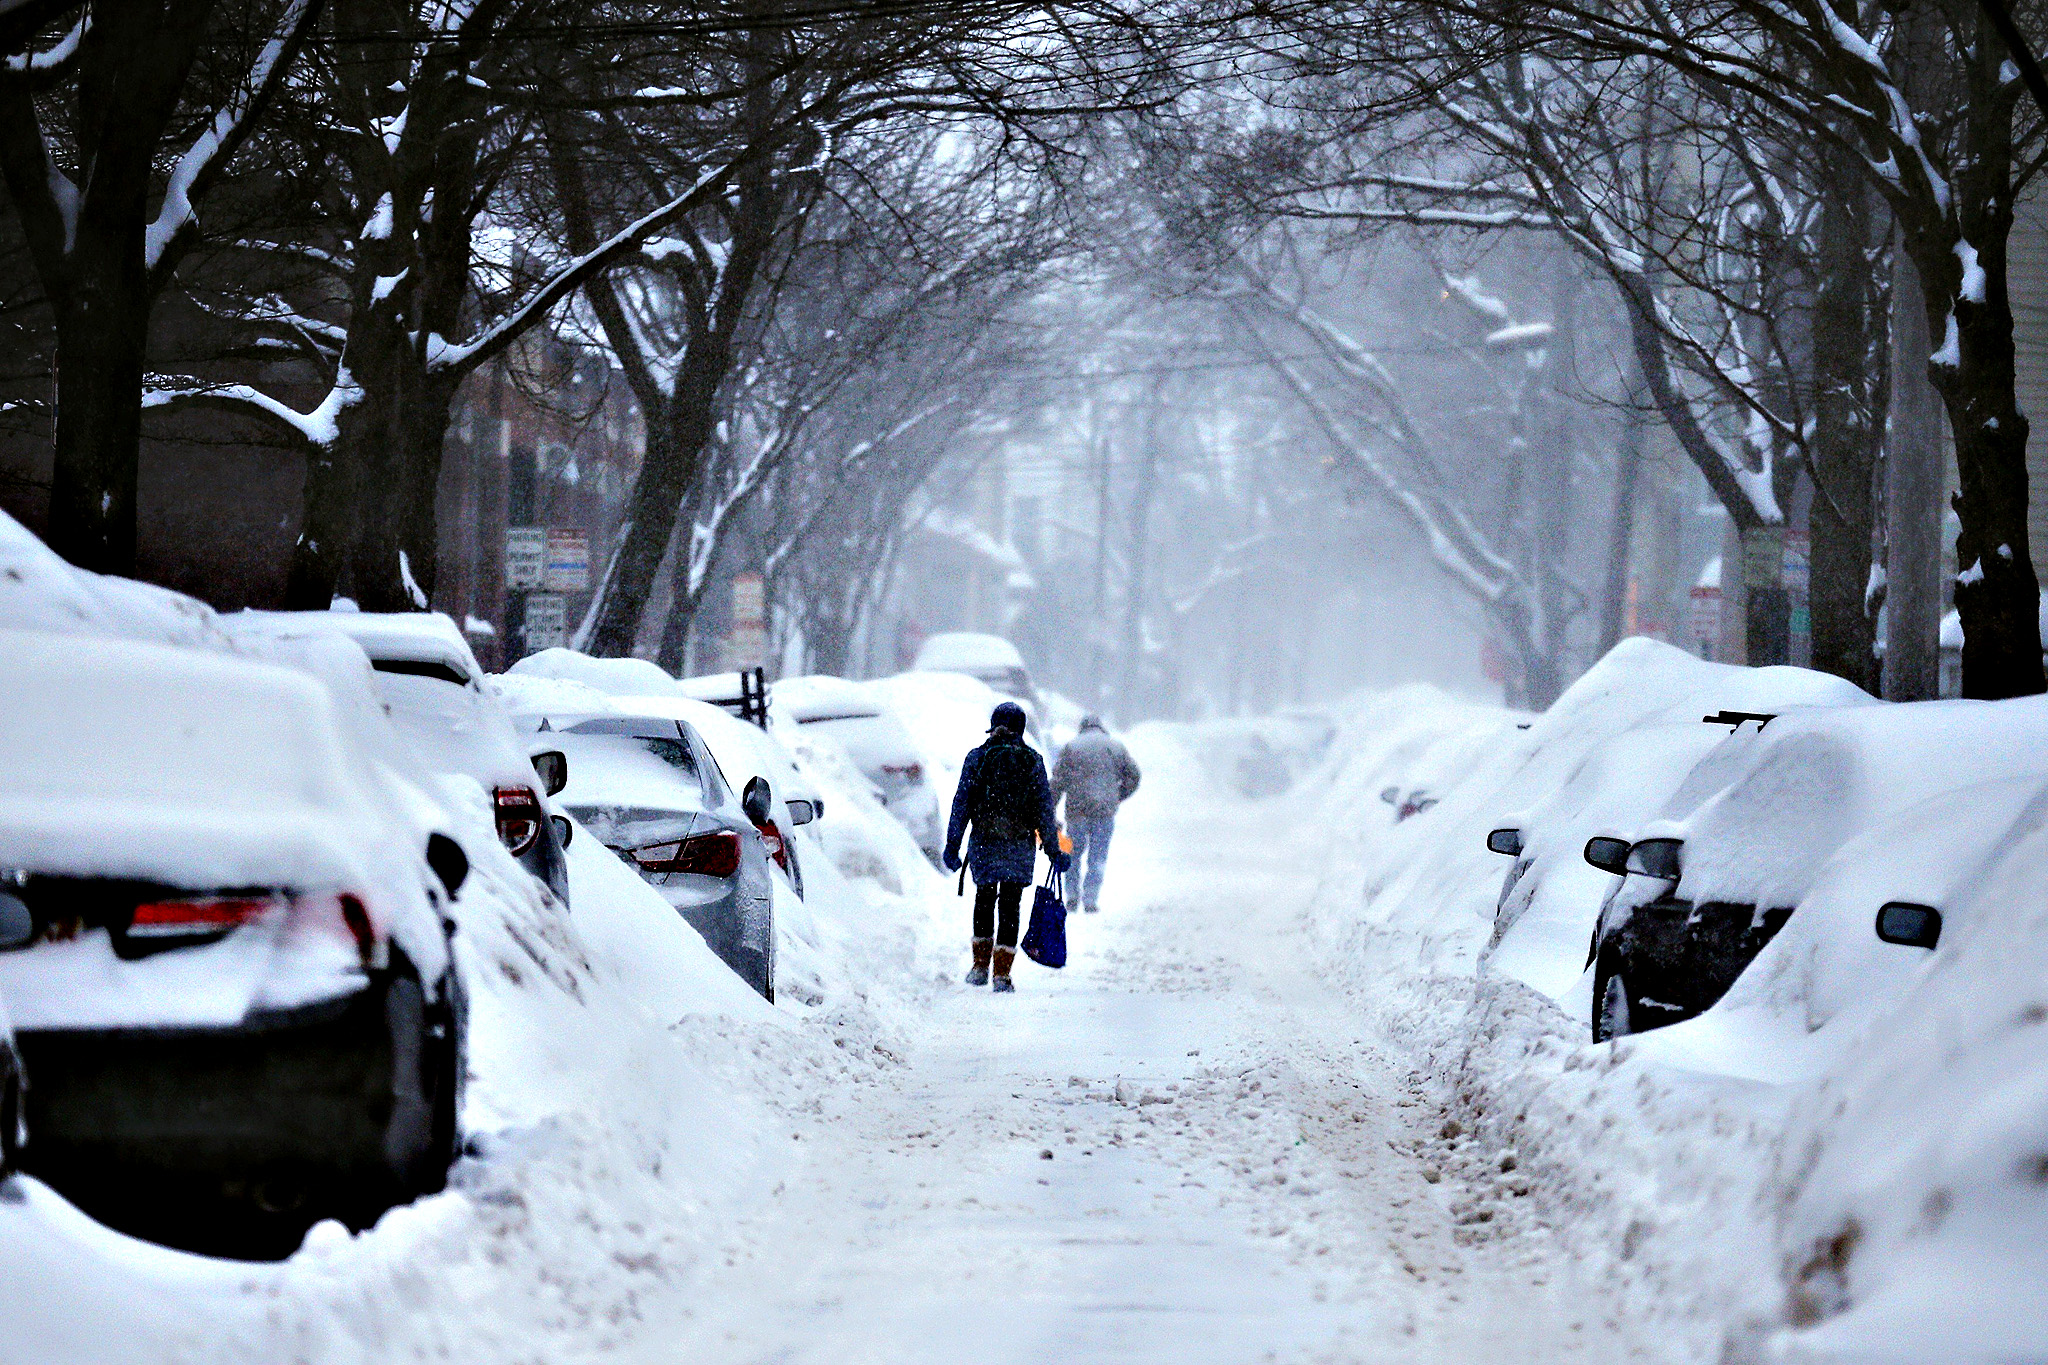 Pedestrians make their way along a snow covered street during a winter snow storm in Cambridge, Massachusetts February 9, 2015.  Boston and other areas of the Northeast, already buried under about a yard of snow, braced for up to two more feet through early Tuesday while more rain and high winds were in store for parts of the Pacific coast, forecasters said on Sunday